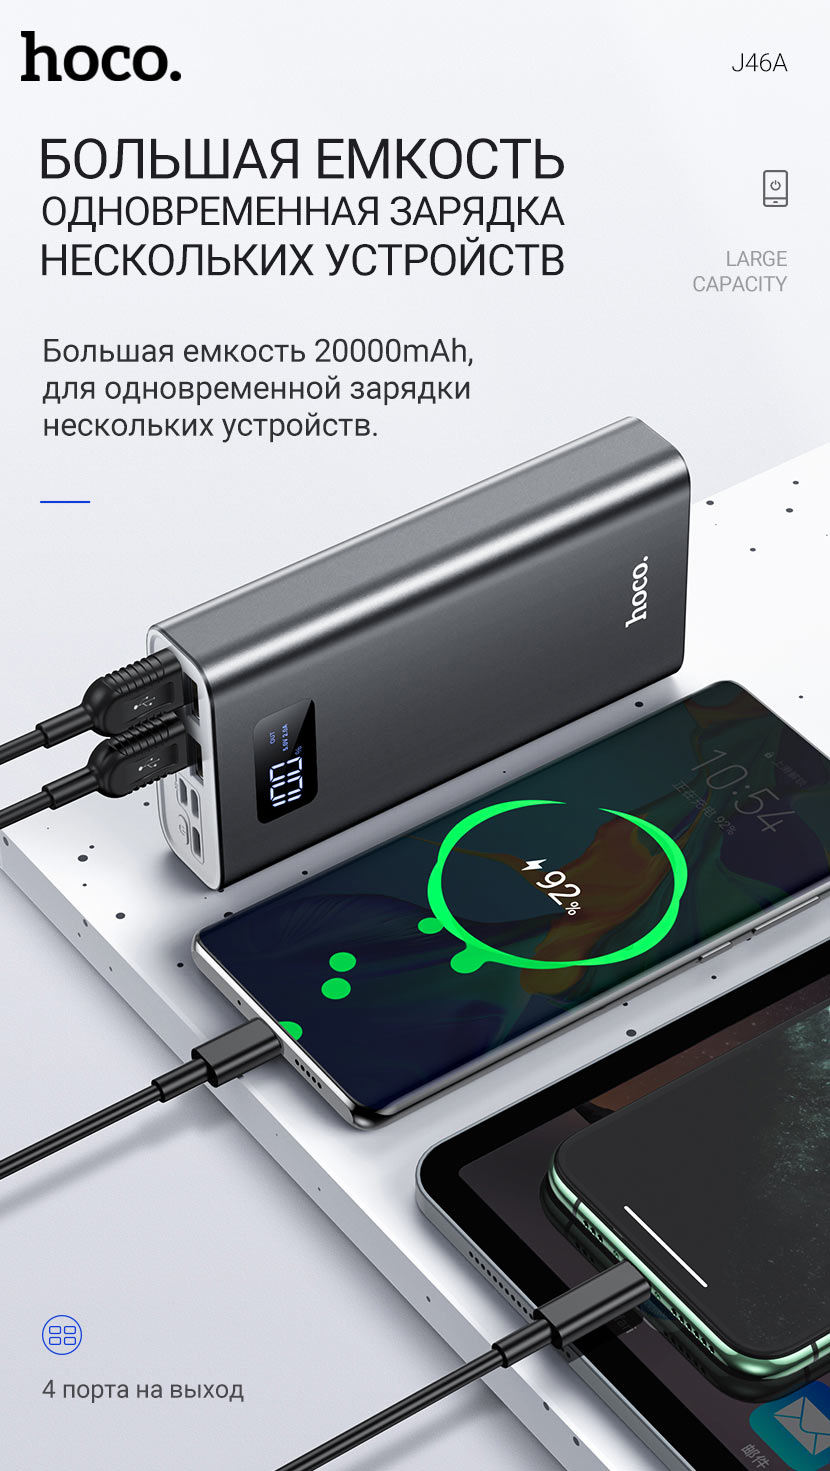 hoco news j46a star ocean mobile power bank 20000mah charging ru